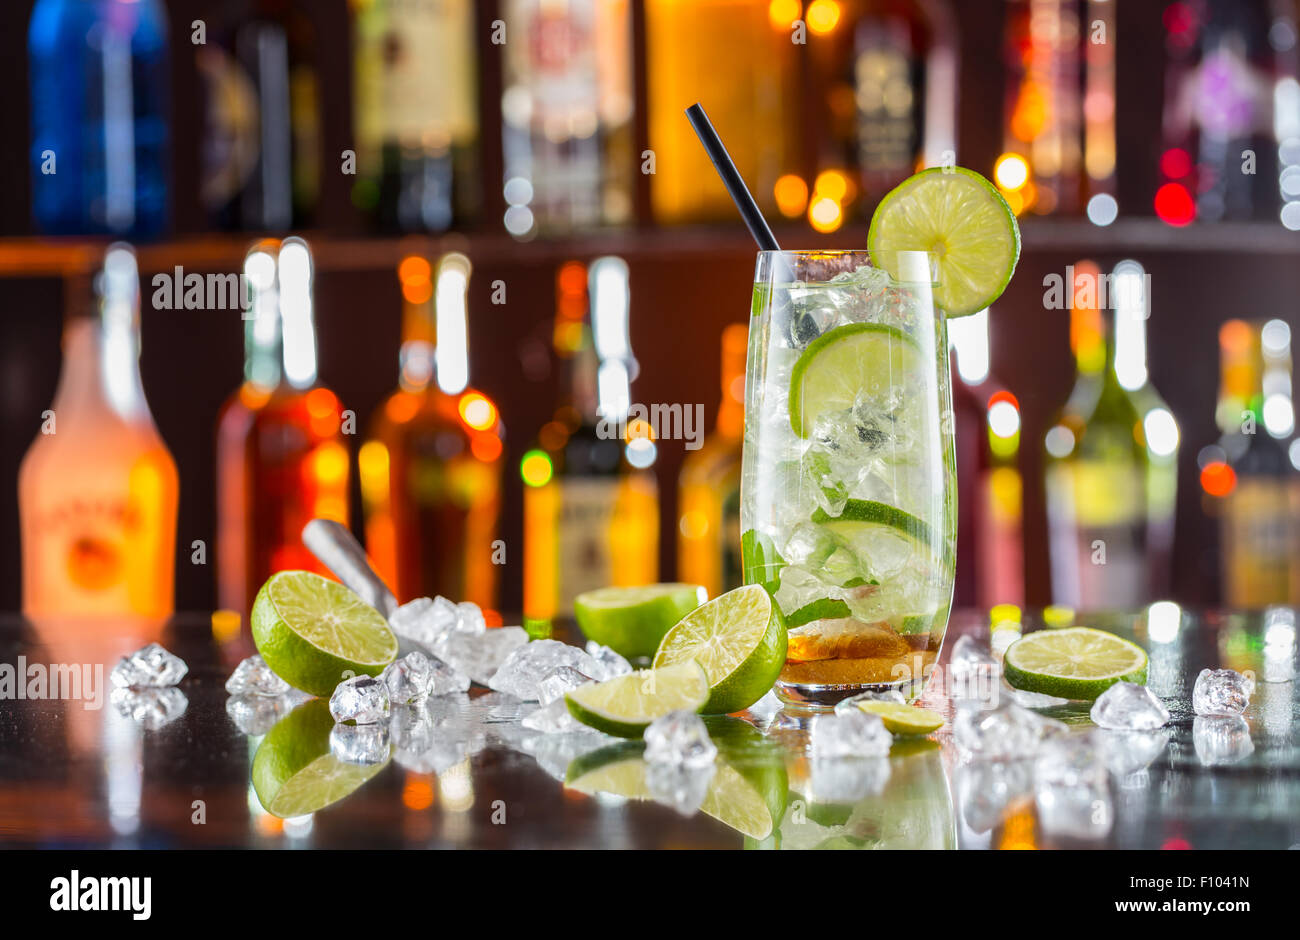 Mojito drink on bar counter - Stock Image